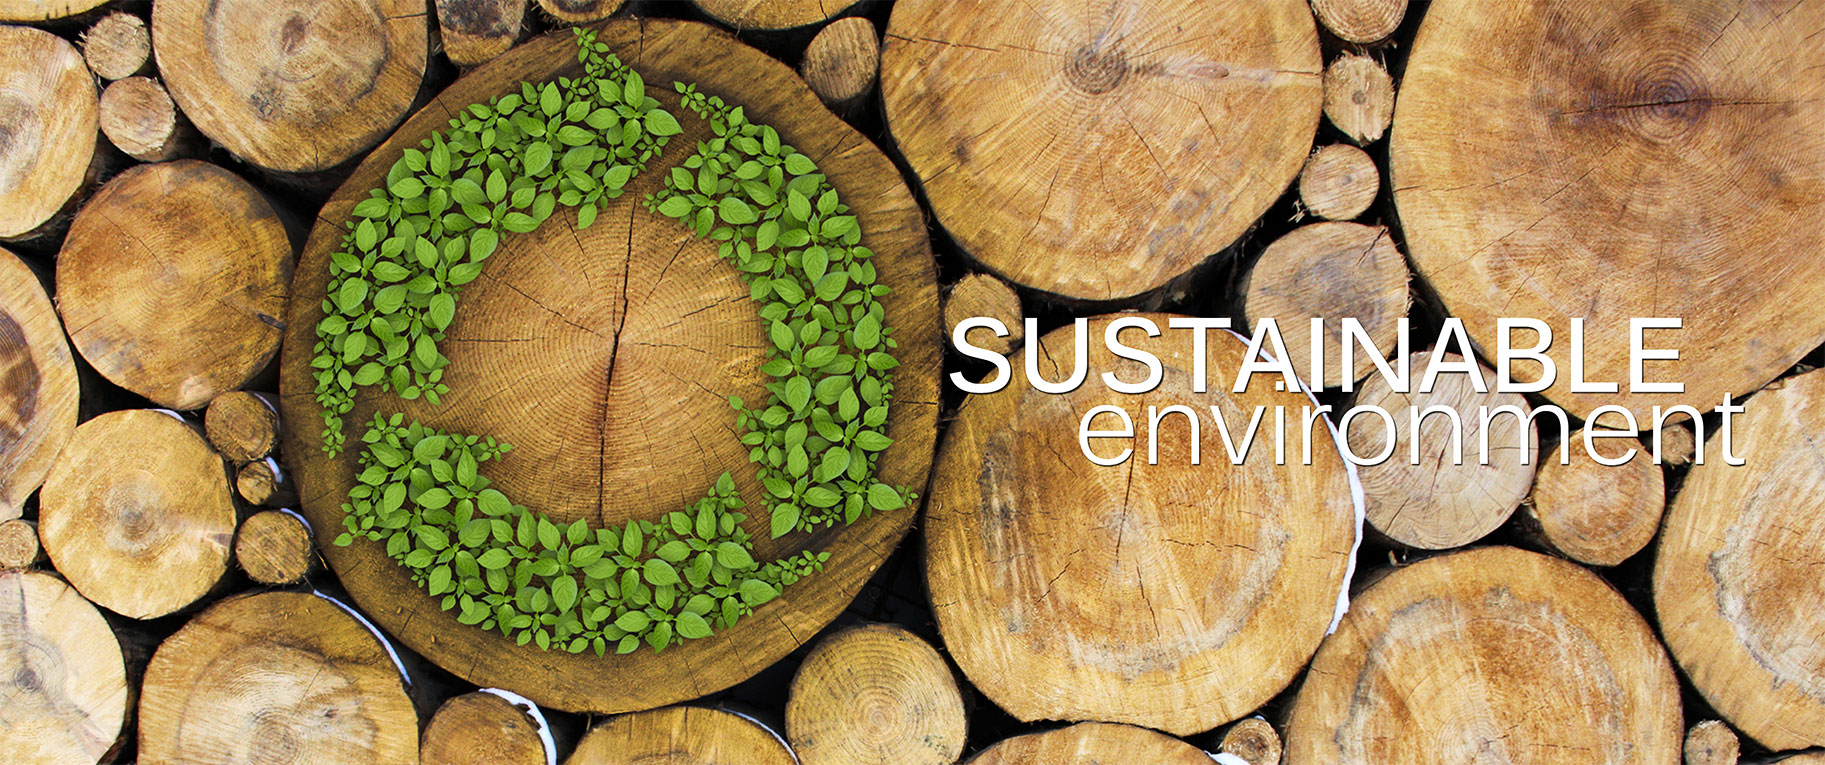 SUSTAINABLE-ENVIRONMENT